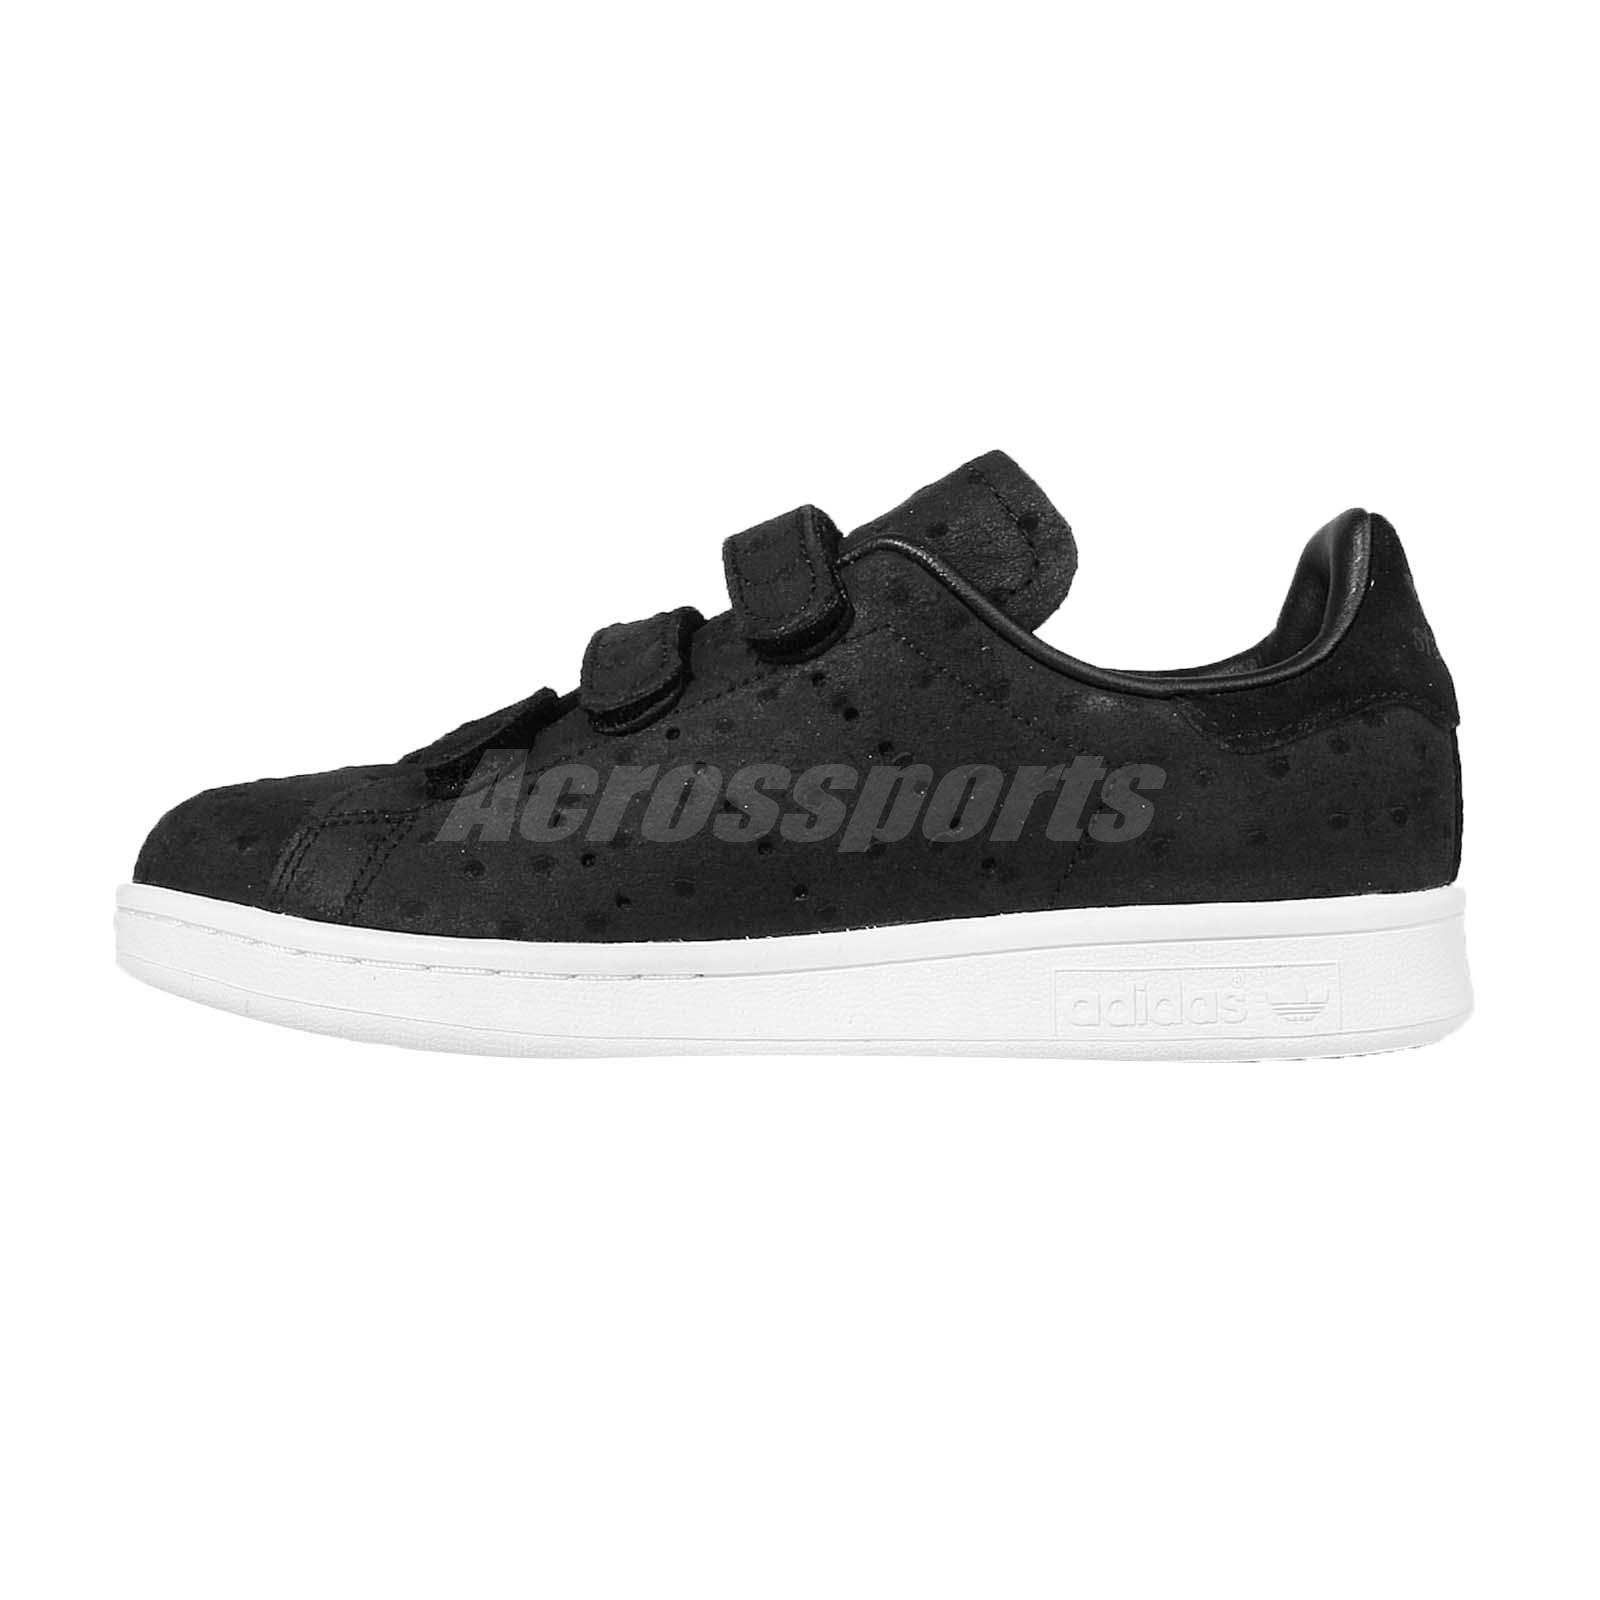 adidas originals stan smith cf w black white womens classic shoe sneakers s78905 ebay. Black Bedroom Furniture Sets. Home Design Ideas